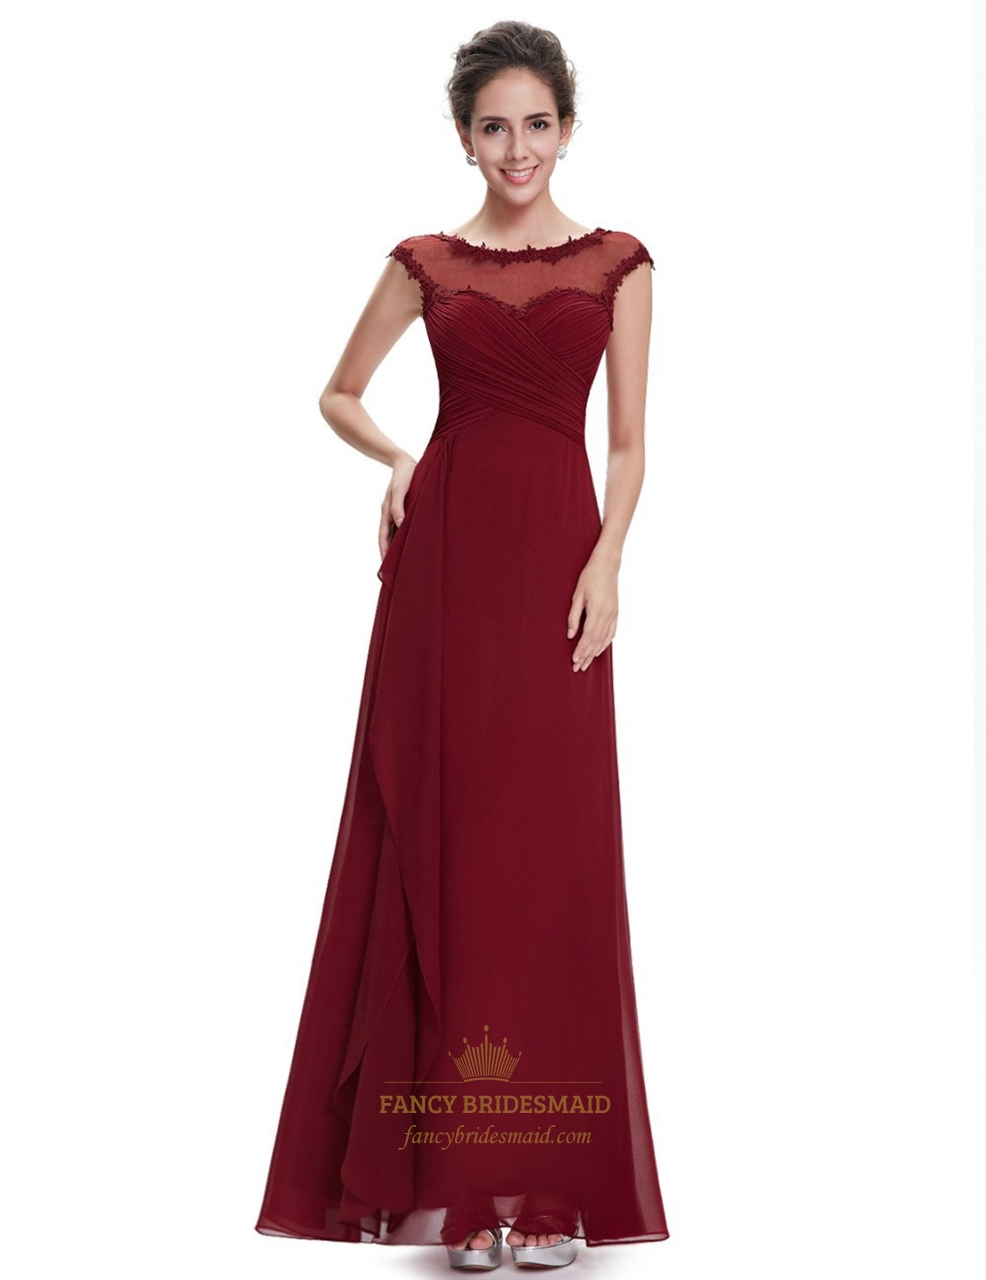 Burgundy Chiffon Cap Sleeves Bridesmaid Dresses With Lace Applique ...